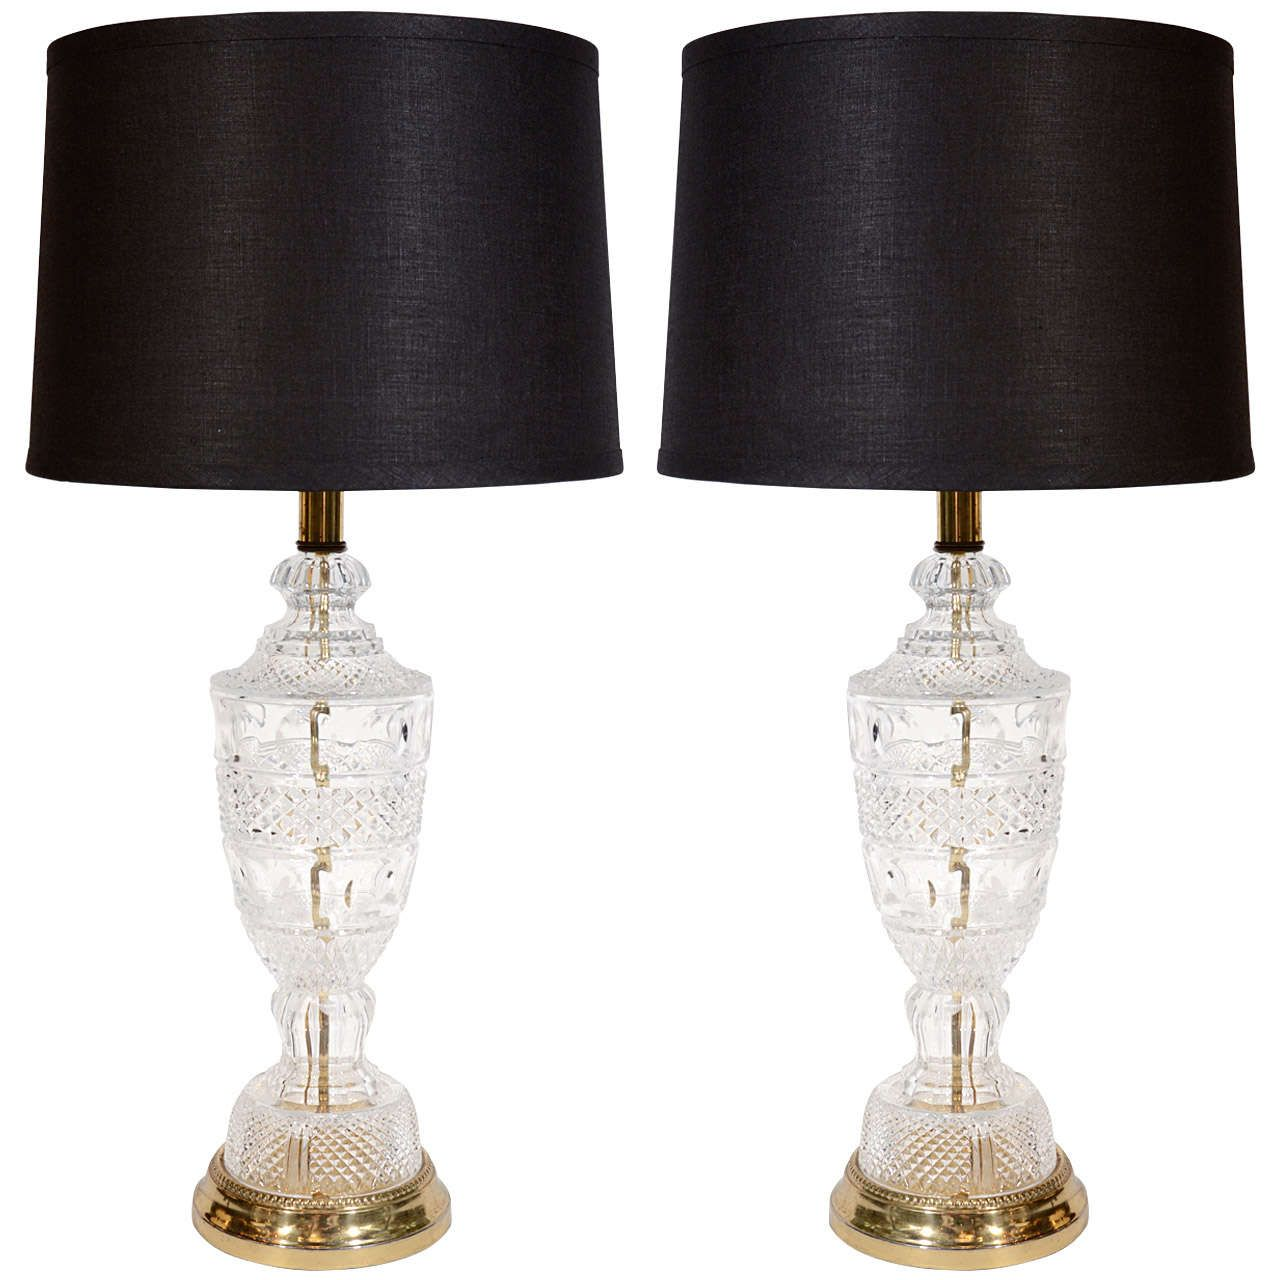 Pair Of Hollywood Regency Cut Crystal Lamps In The Style Of Baccarat 1